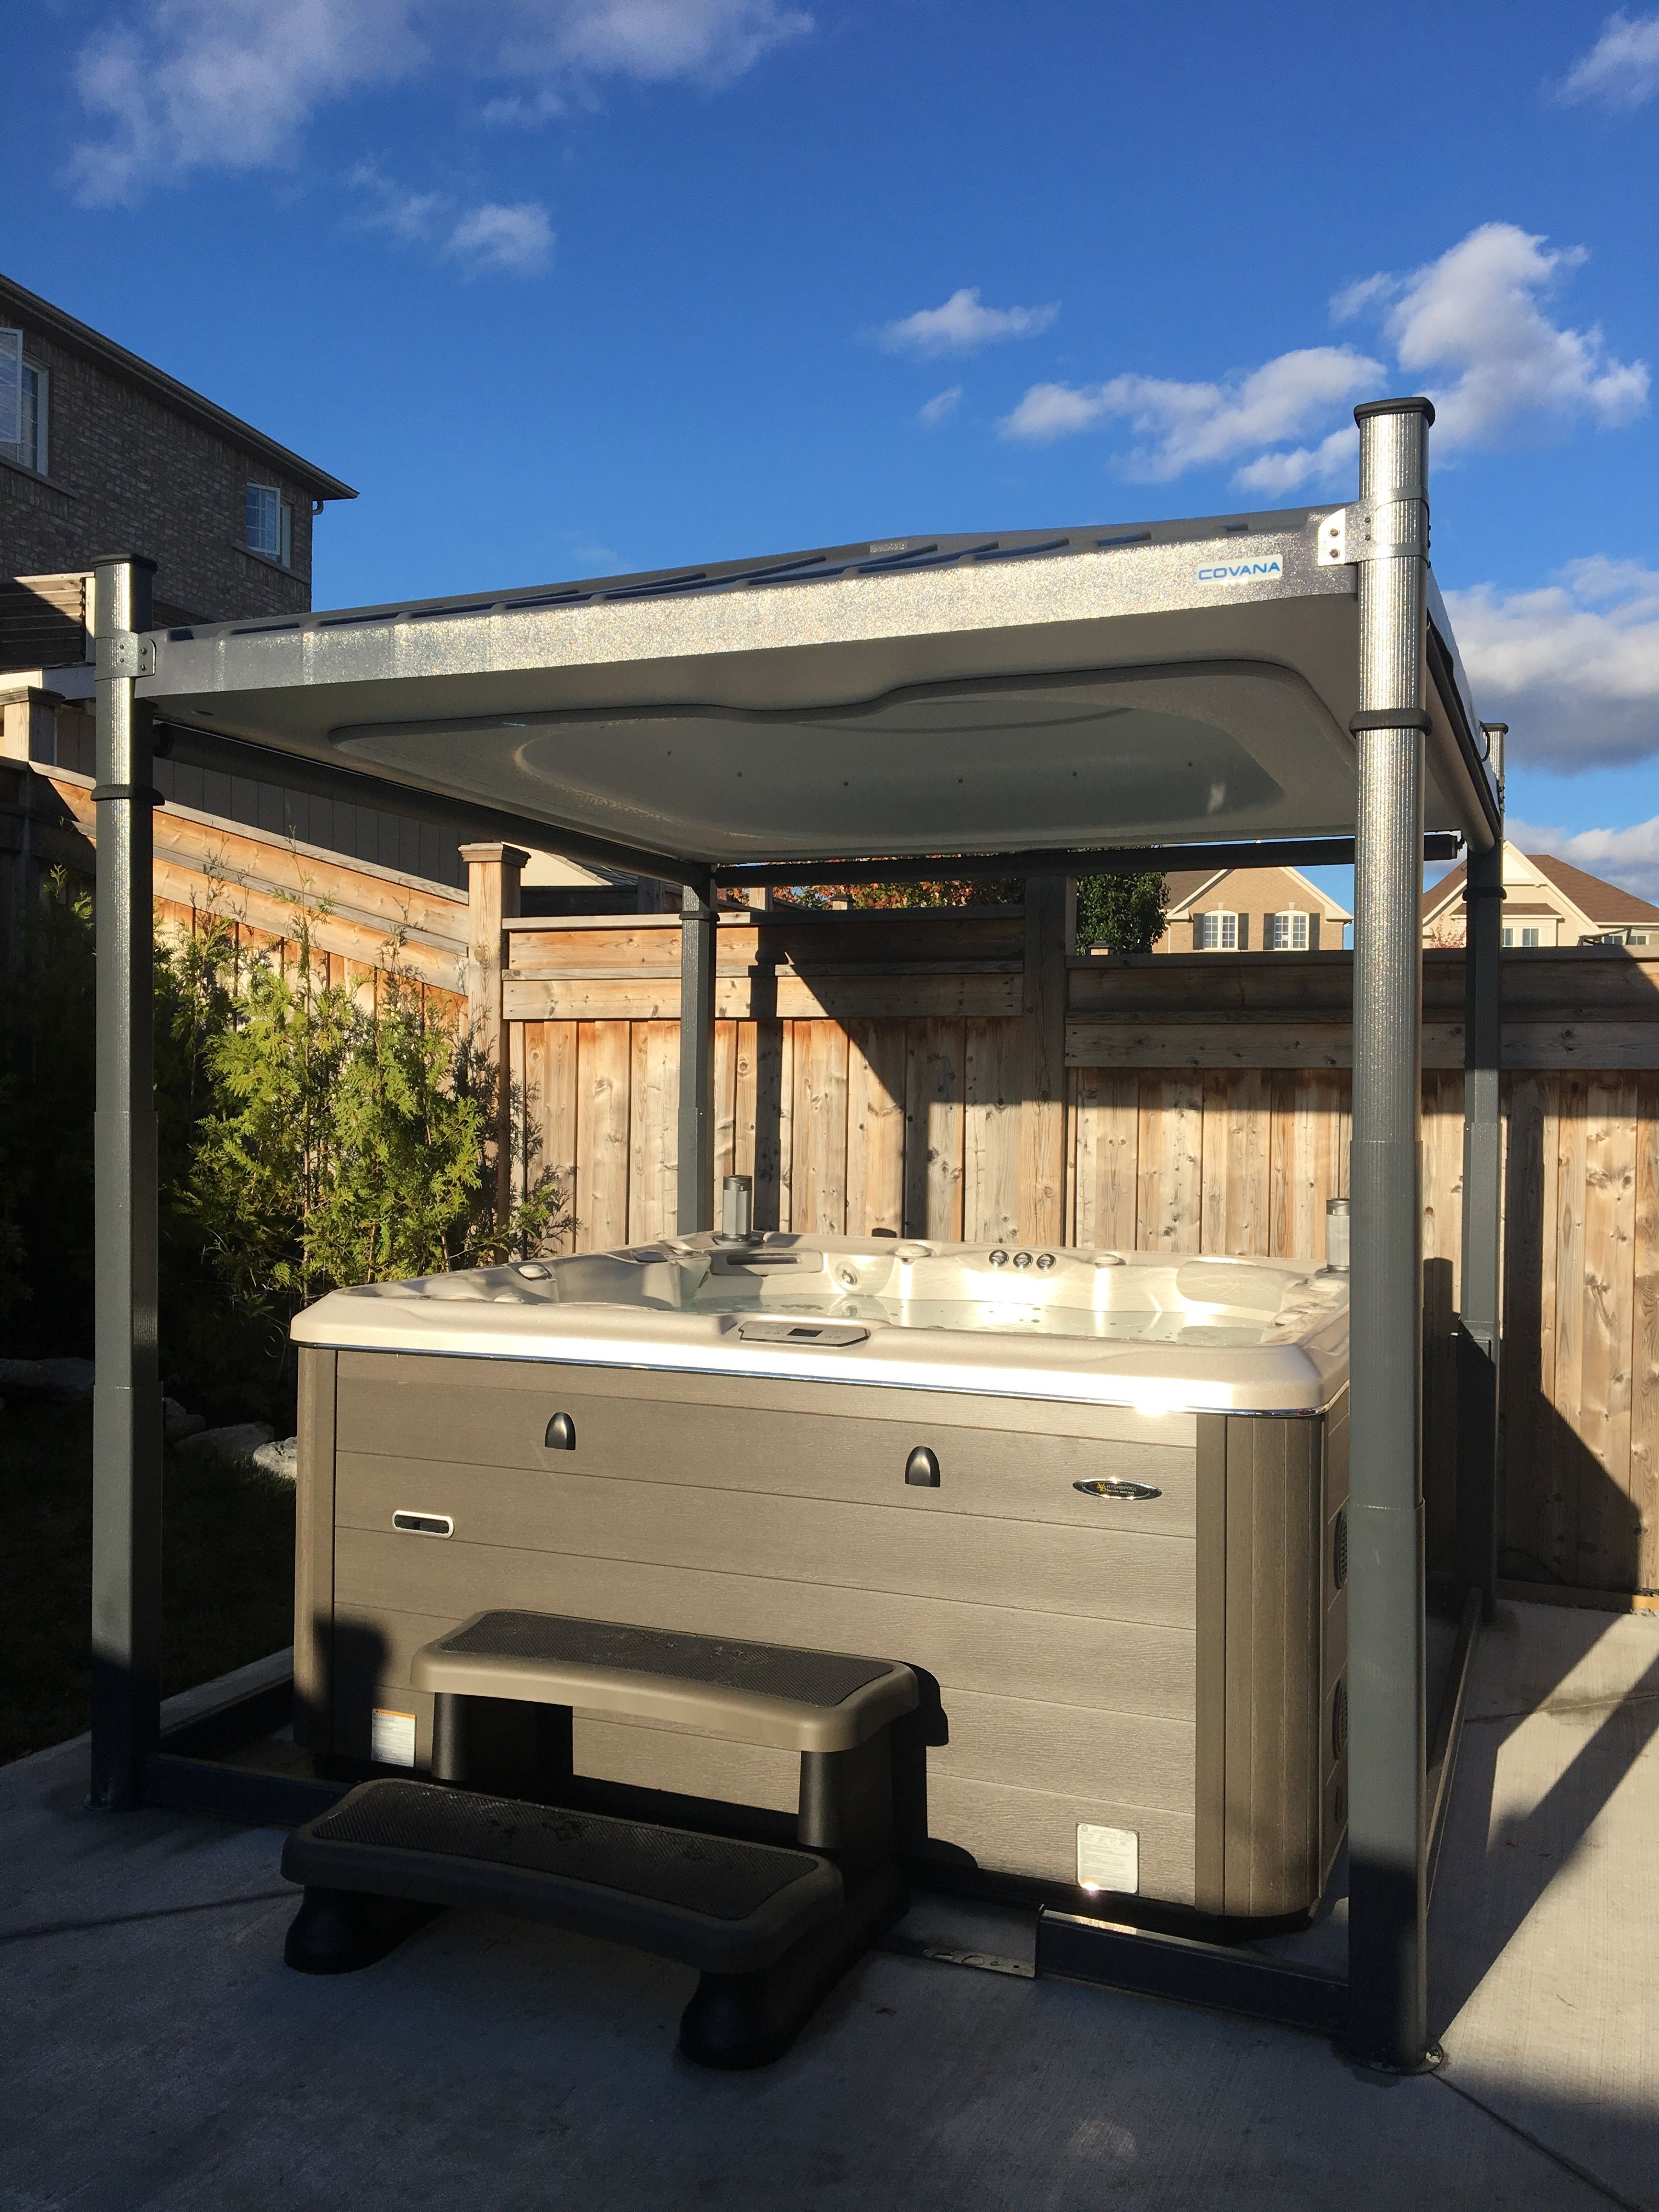 The Covana An Automatic Hot Tub And Swim Spa Cover Made In Canada The Most Energy Efficient Longest Lasting Hot Hot Tub Cover Tub Cover Hot Tub Accessories